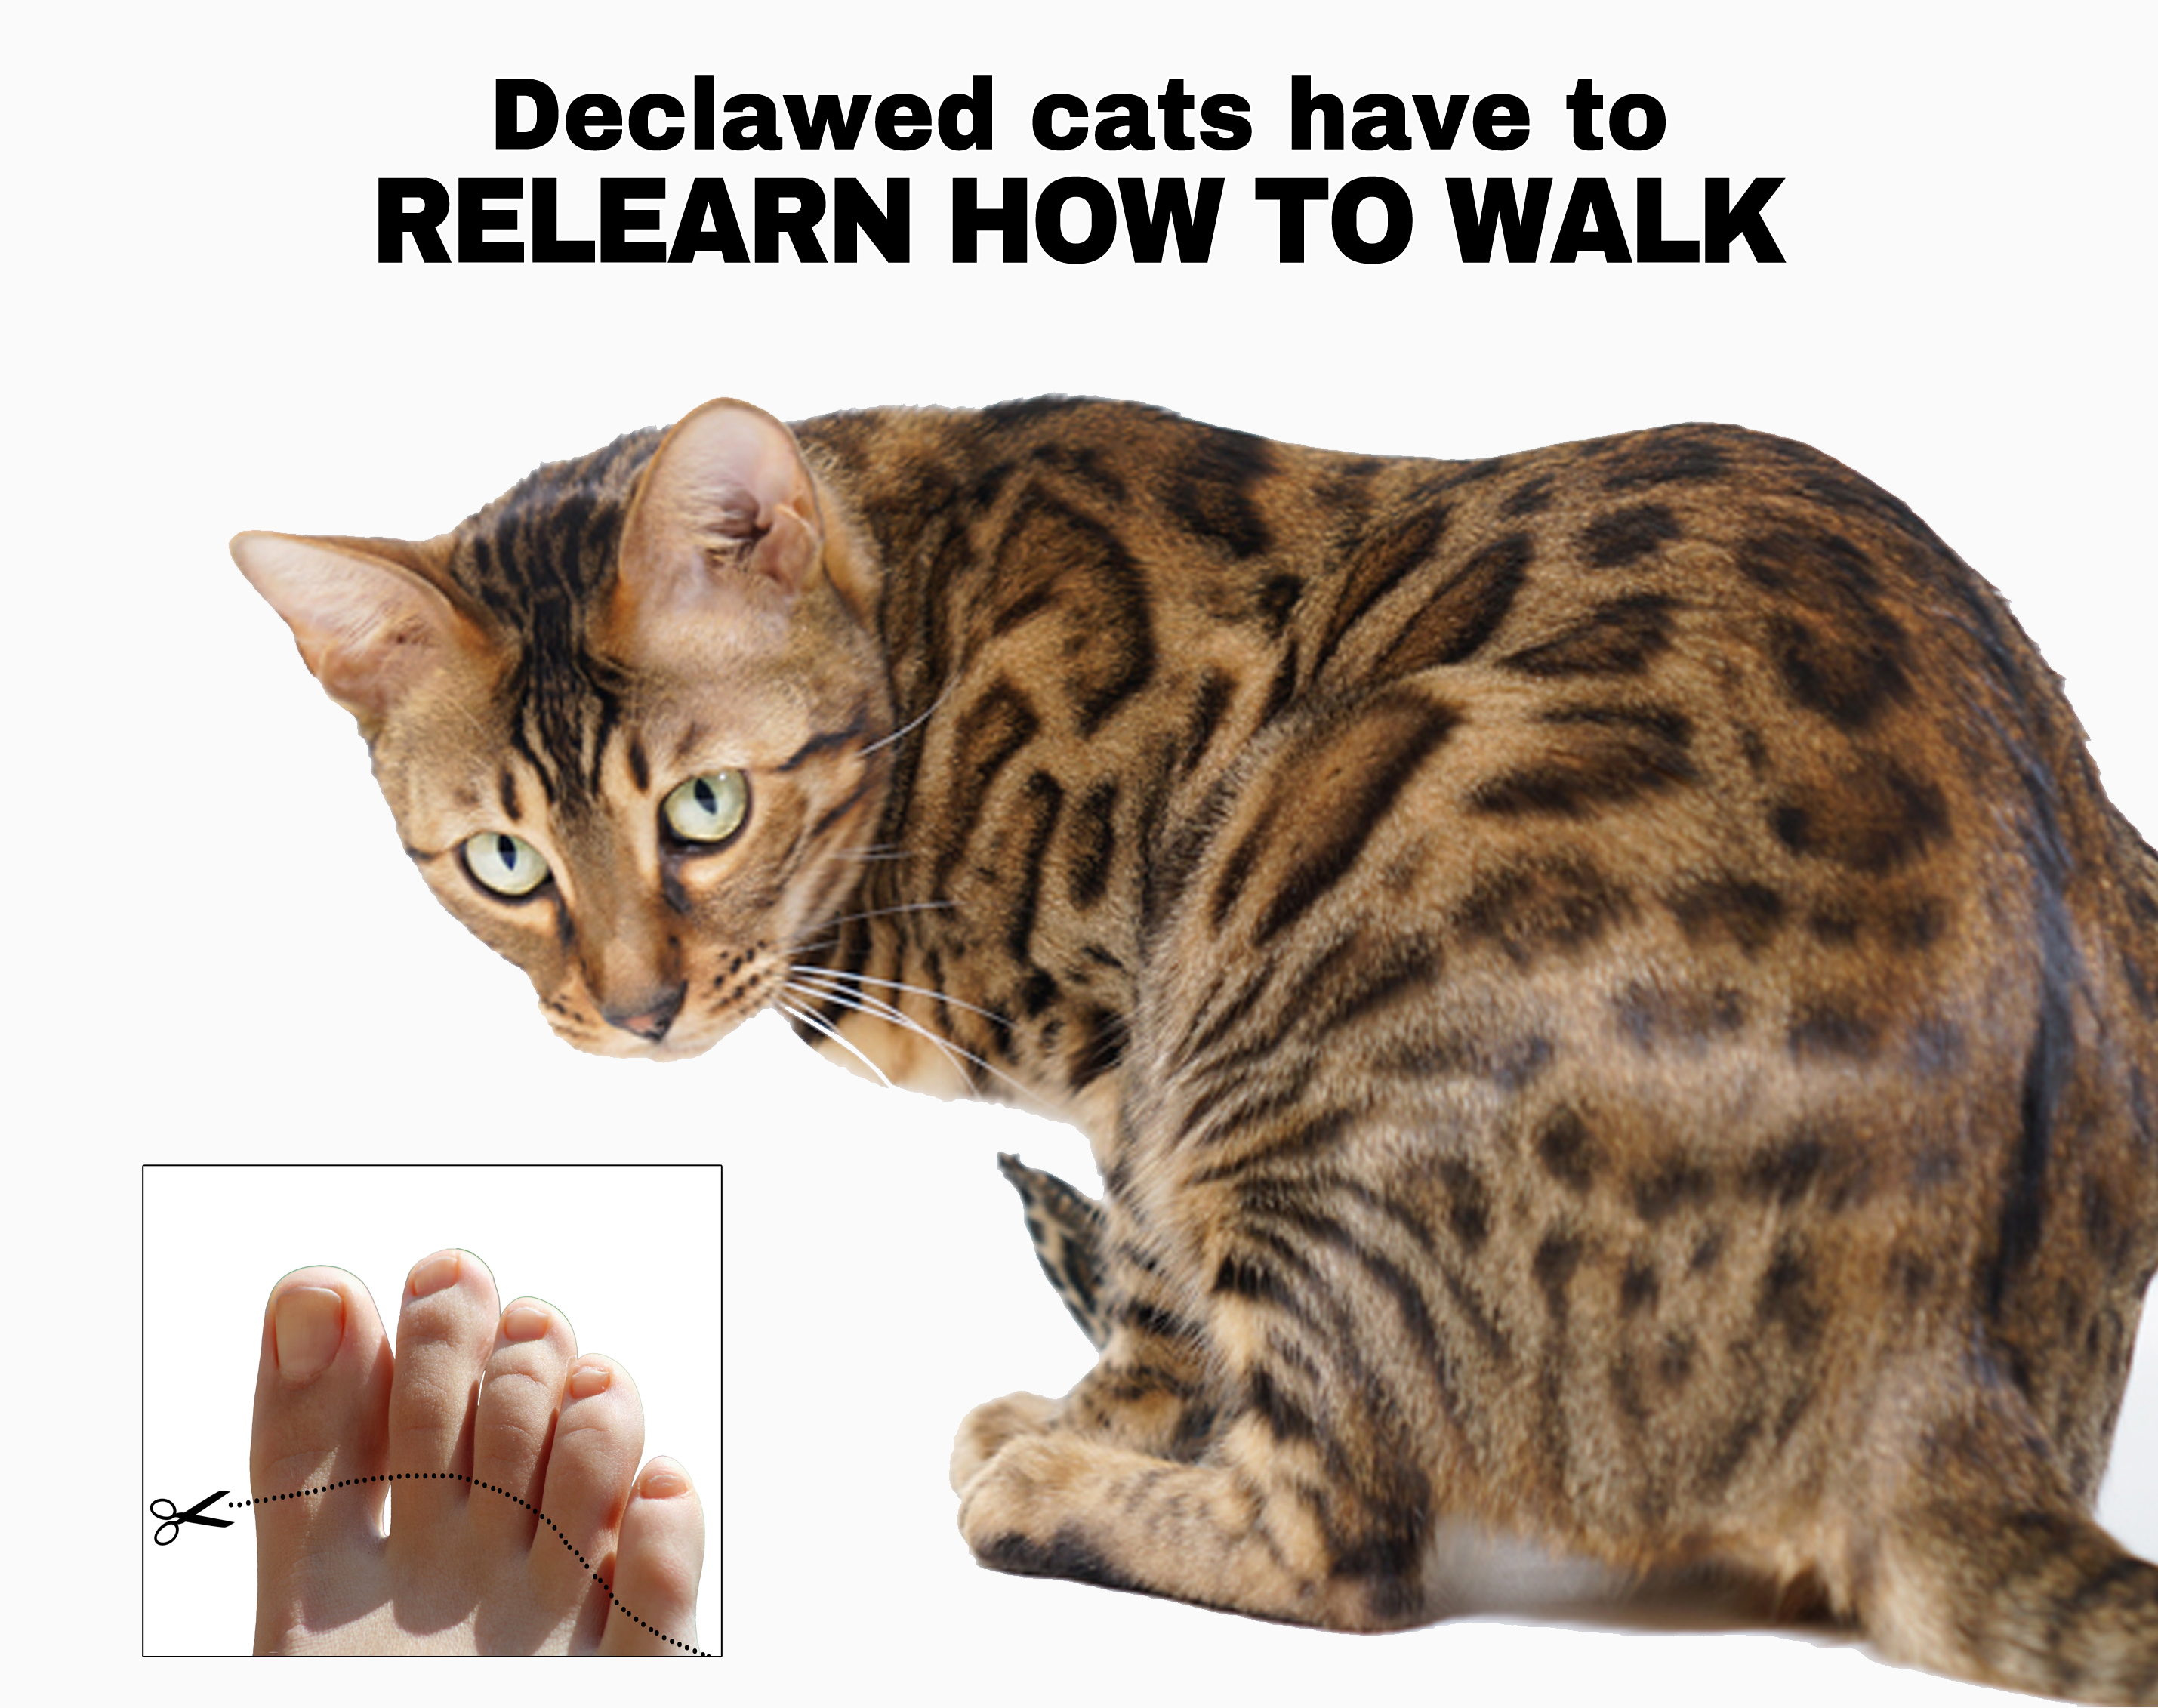 8 Reasons Why You Should Never Declaw Your Cats Peta Declawing Cats Cats Animal Companions